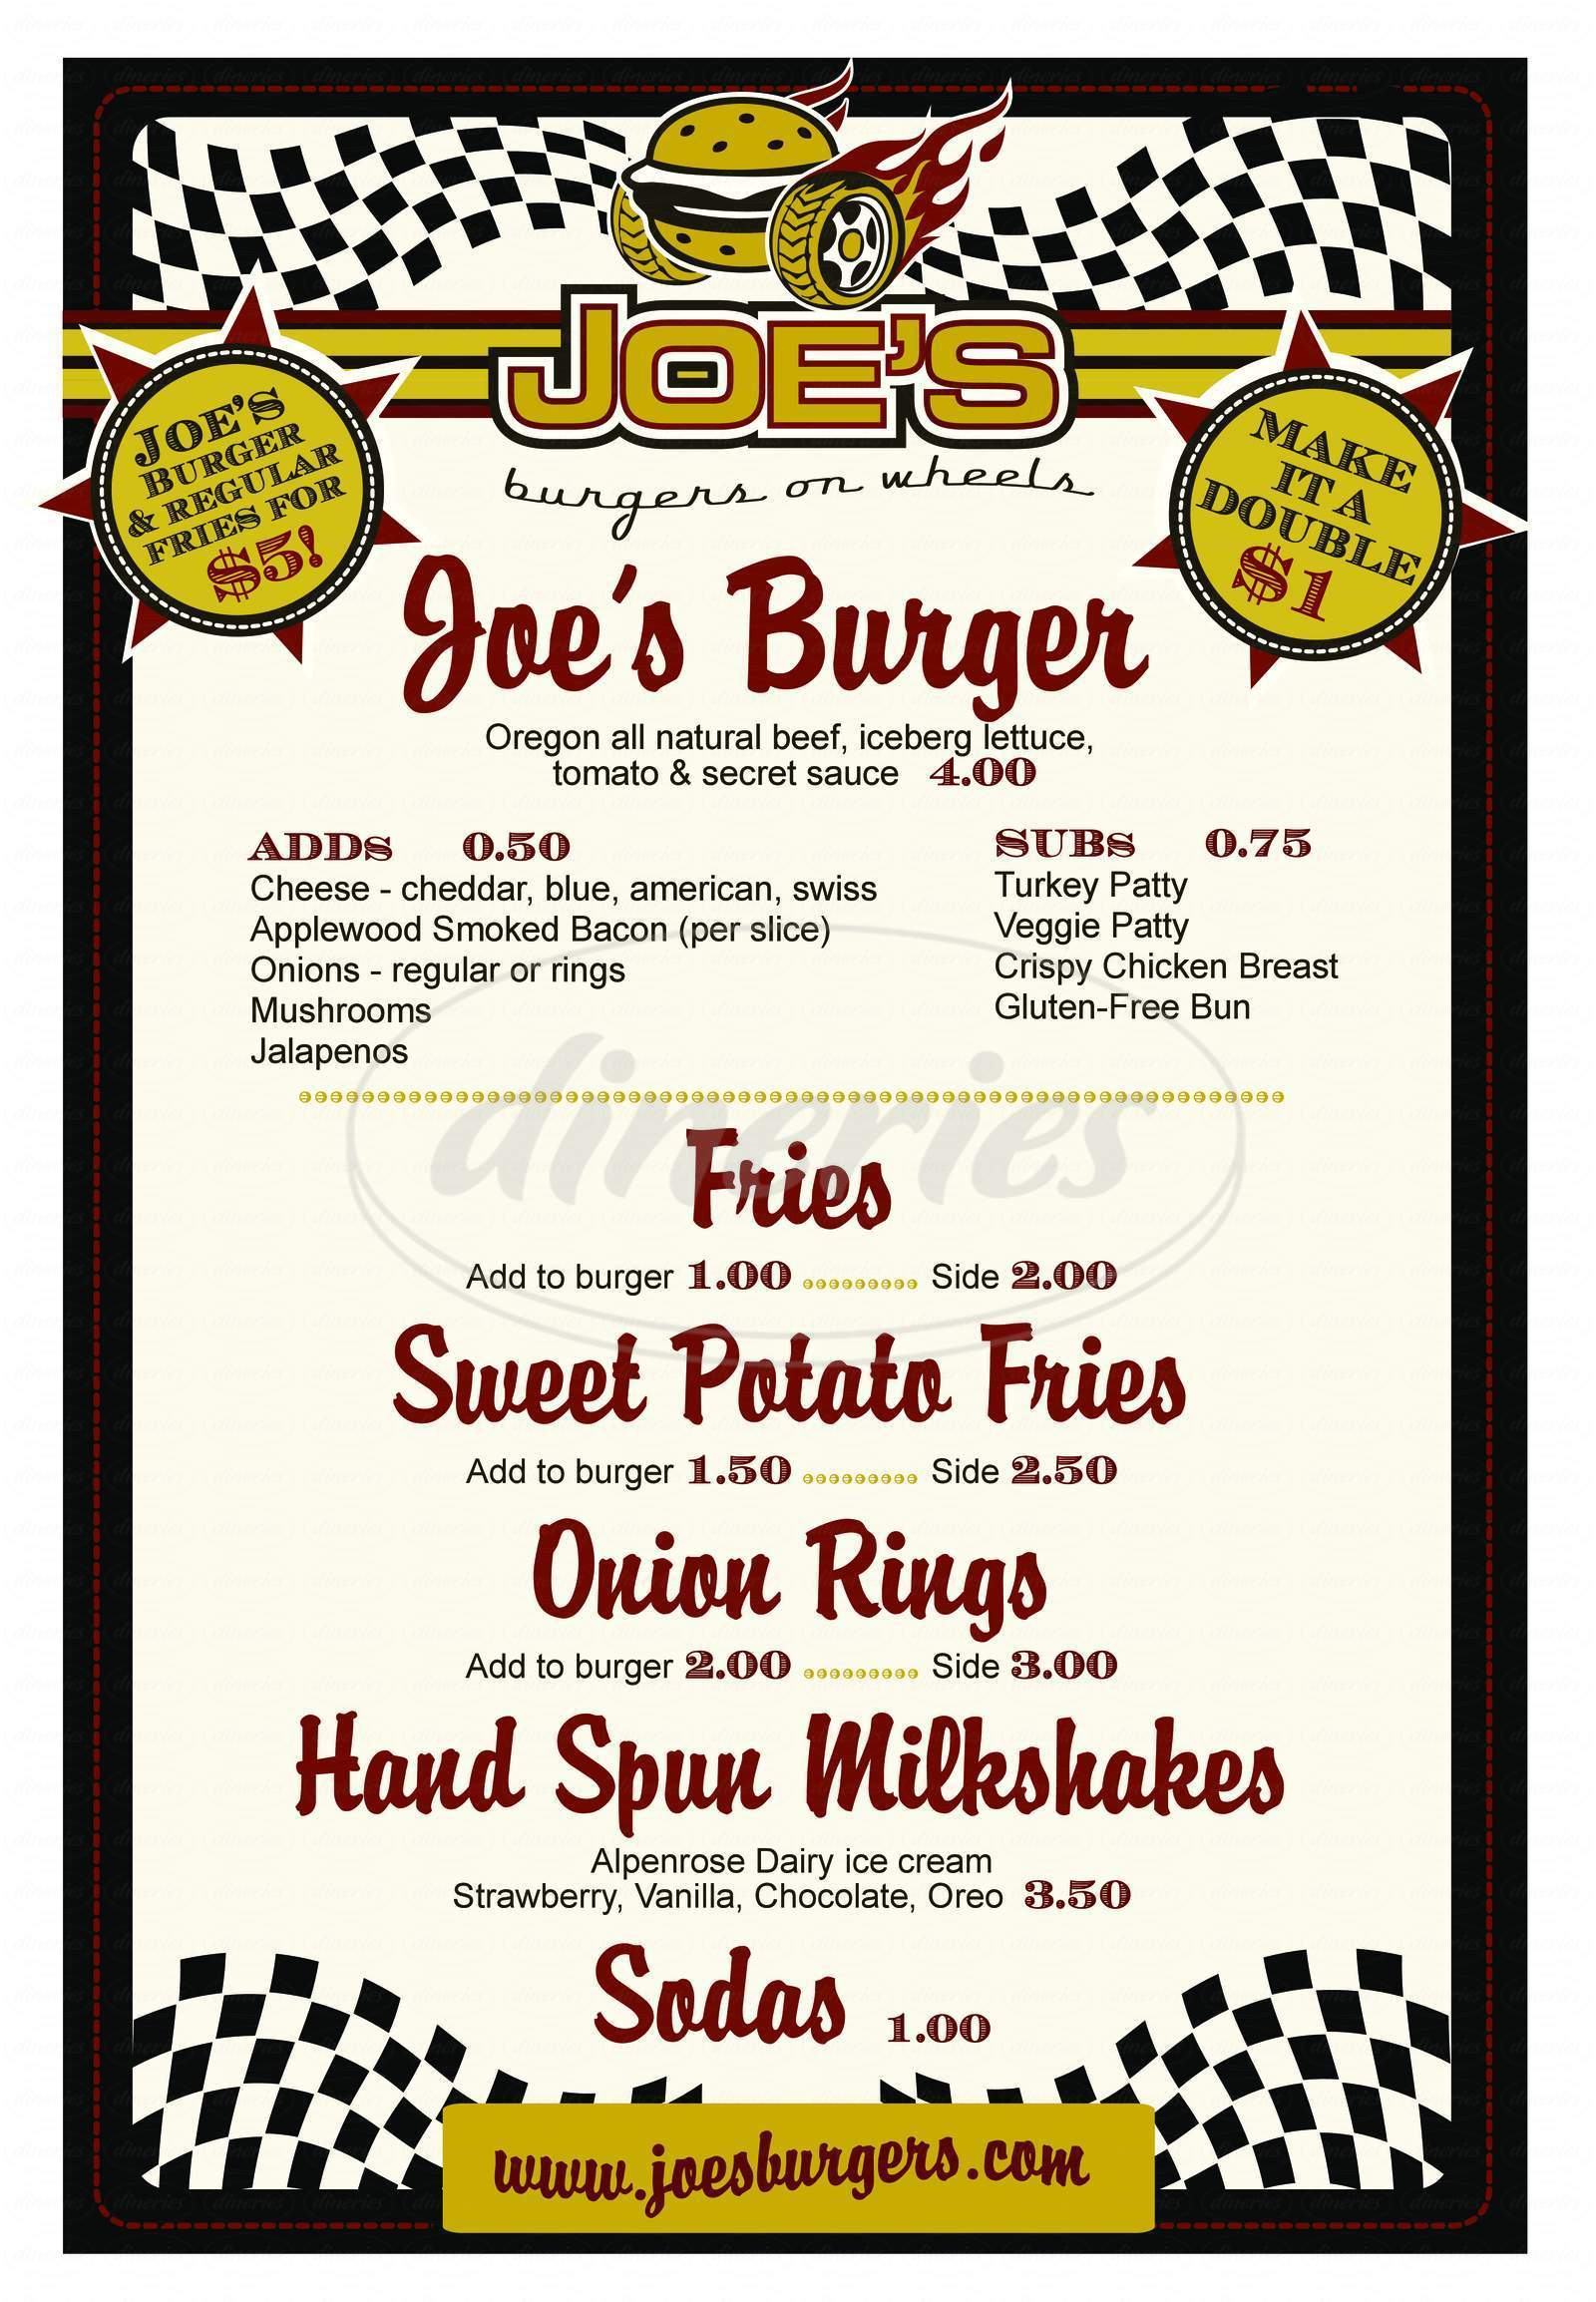 menu for Joe's Burgers & Bar